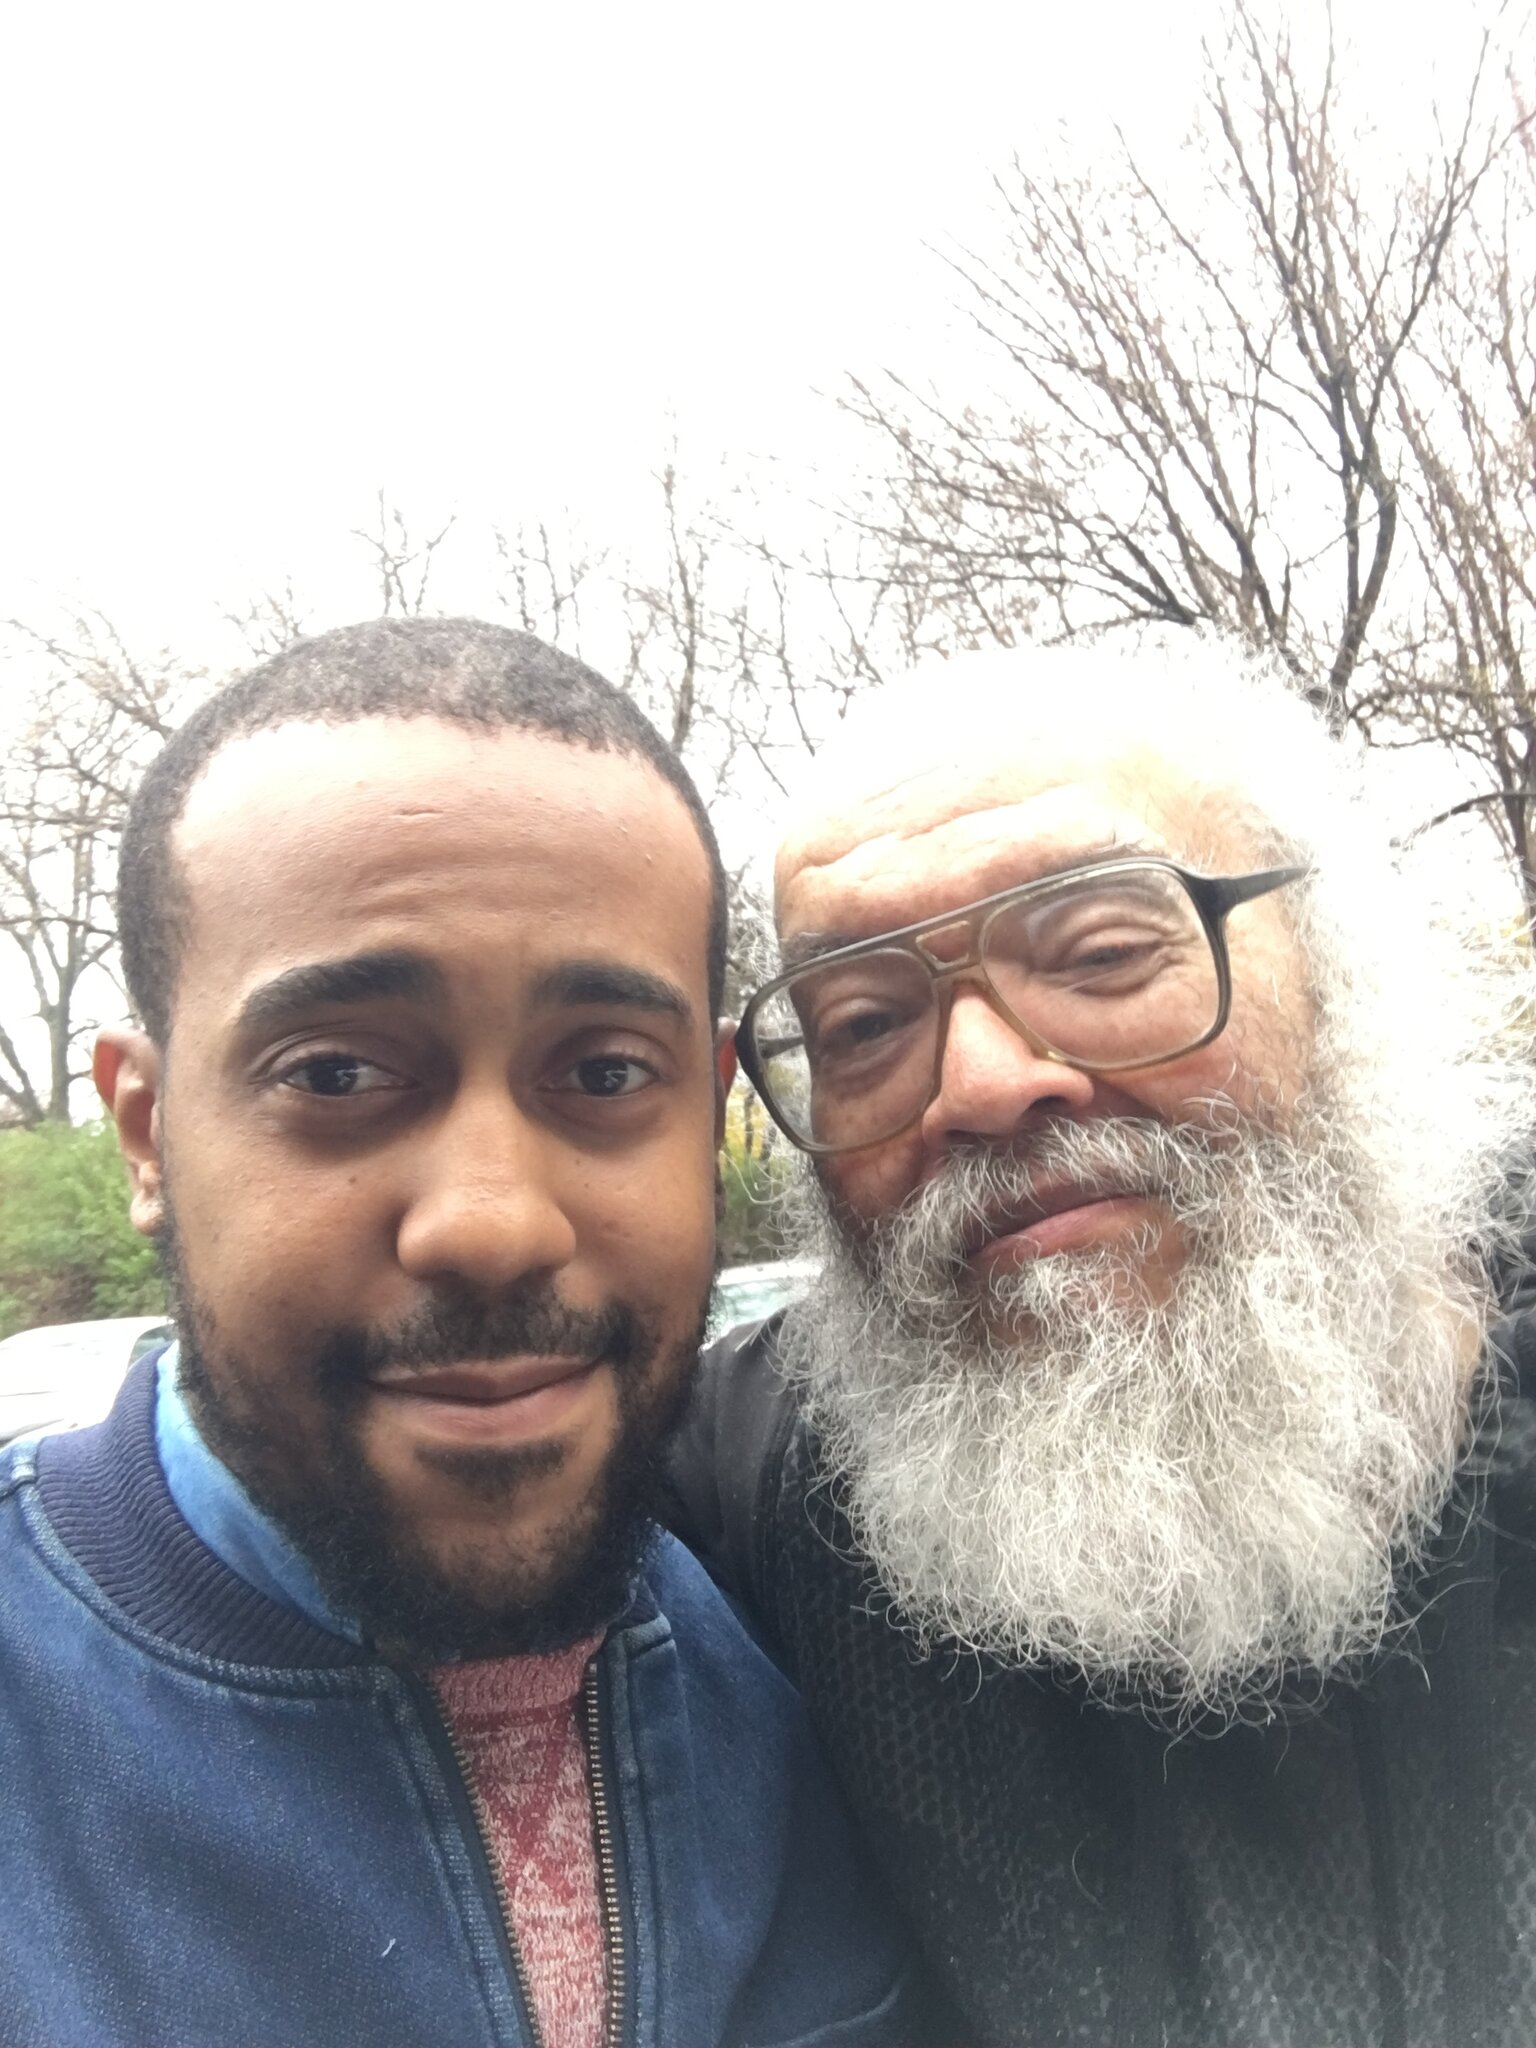 The author Charles R. Saunders, right, in 2019 with Taaq Kirksey, who has been working to develop a television series based on Mr. Saunders's books about a warrior hero named Imaro.